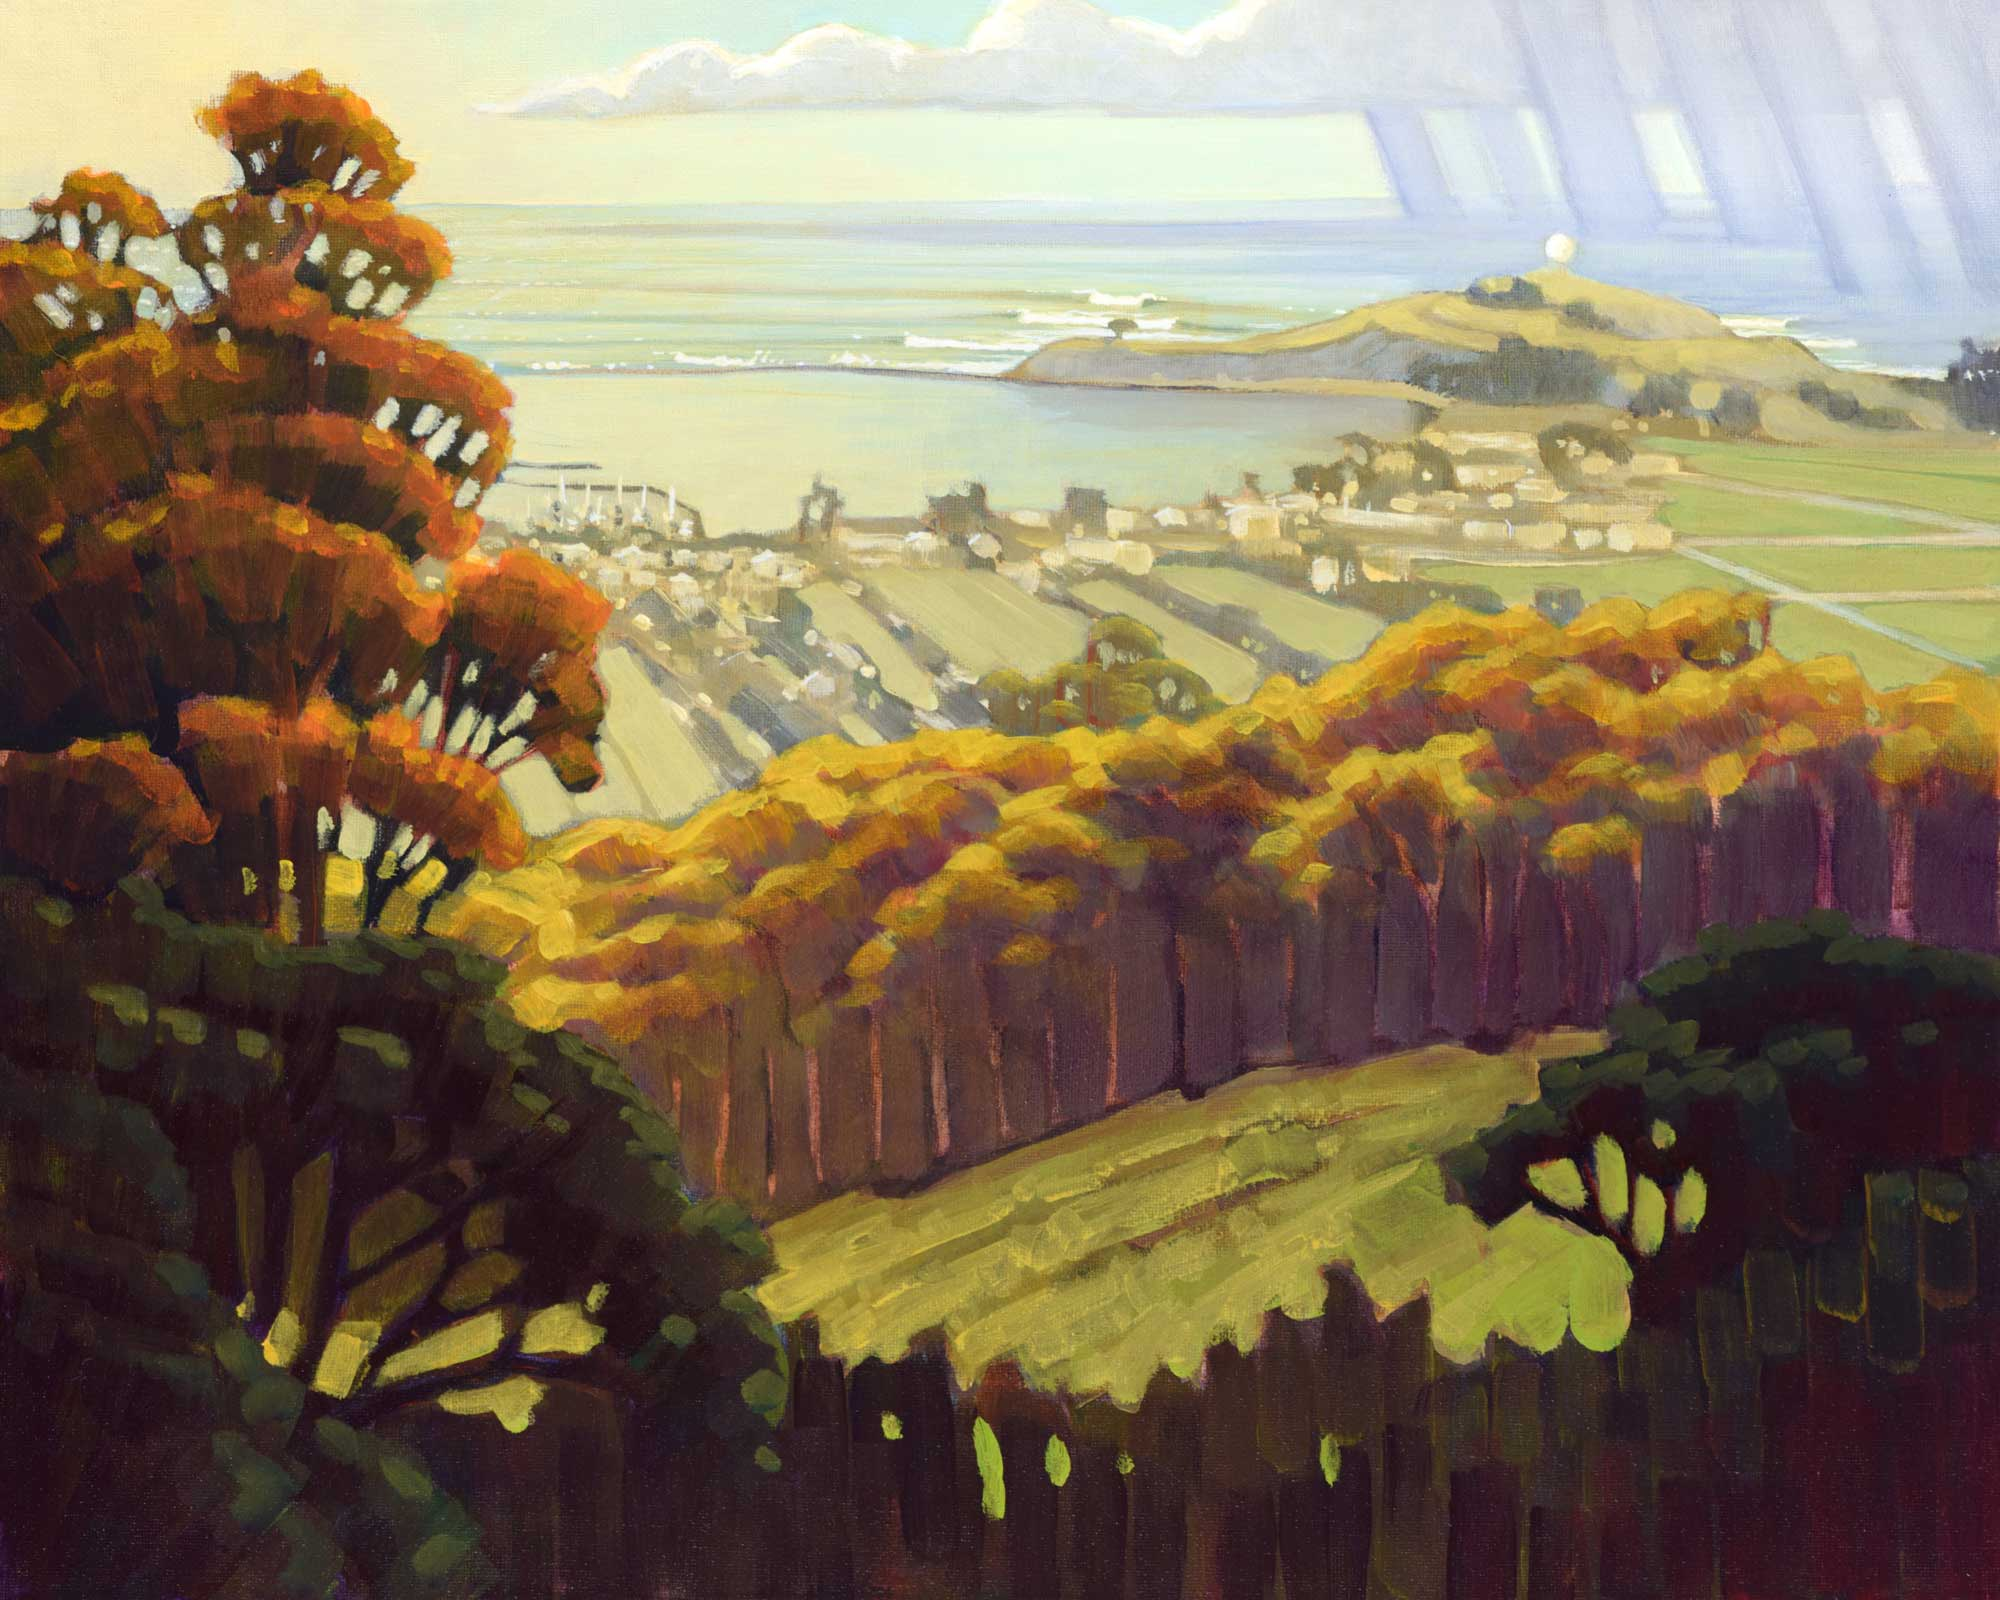 Plein air landscape painting overlooking Half Moon Bay and Maverick's in the distance on the San Mateo coast of California